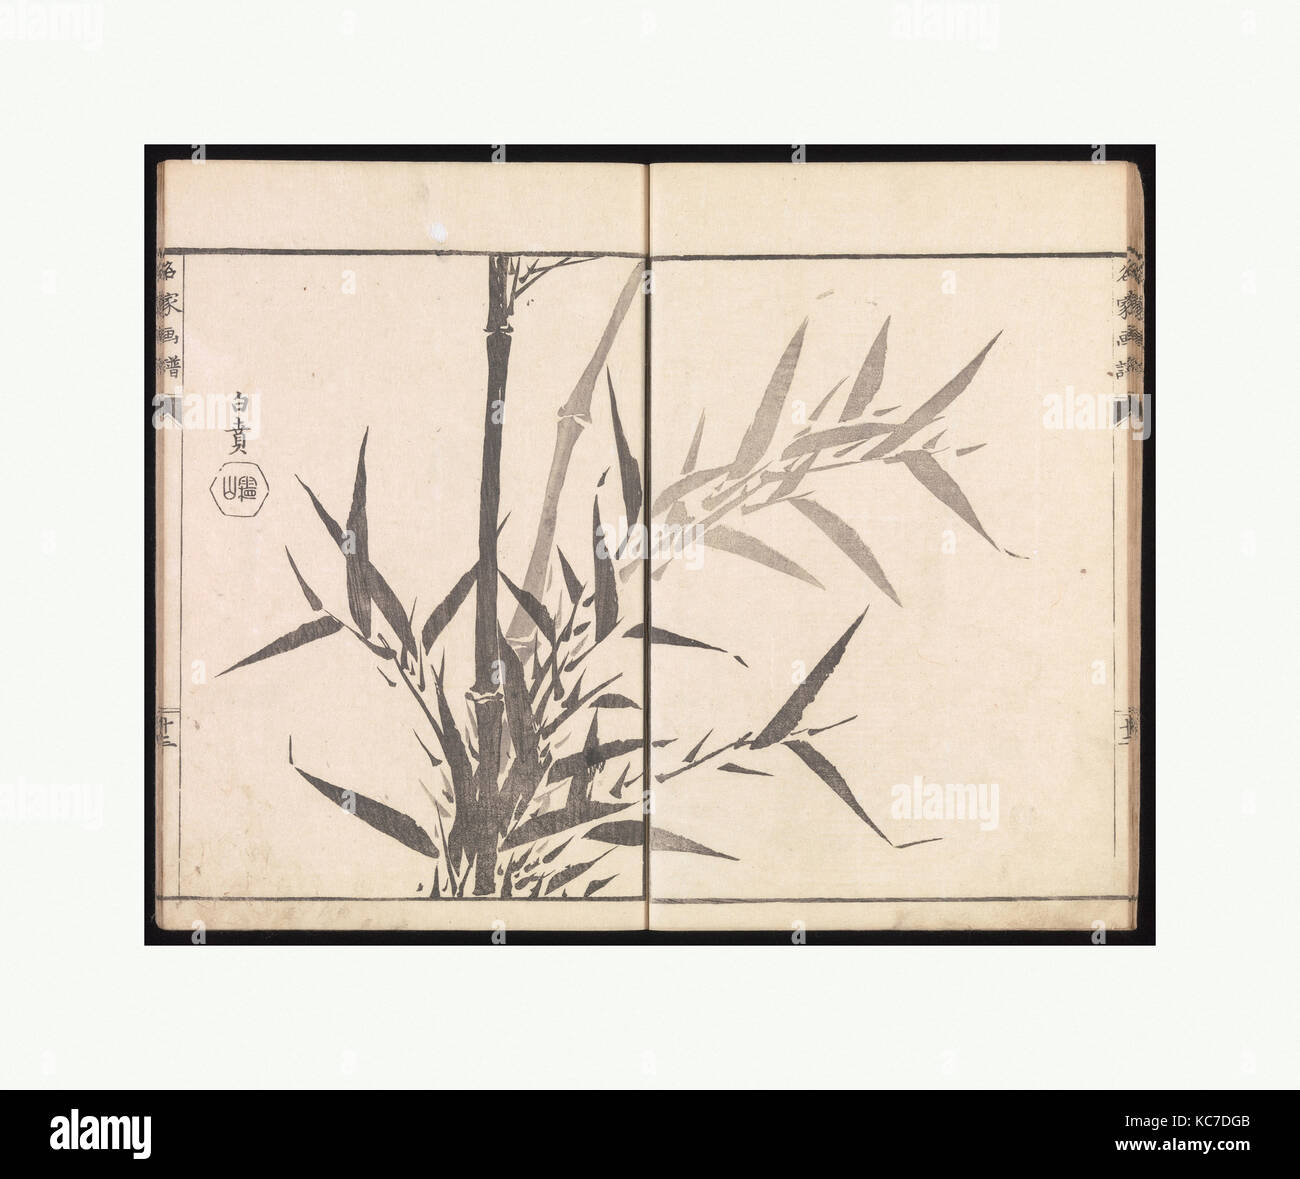 Sketches Reproduced from Works of Famous Artists, Kawanabe Kyōsai, 1814 Stock Photo